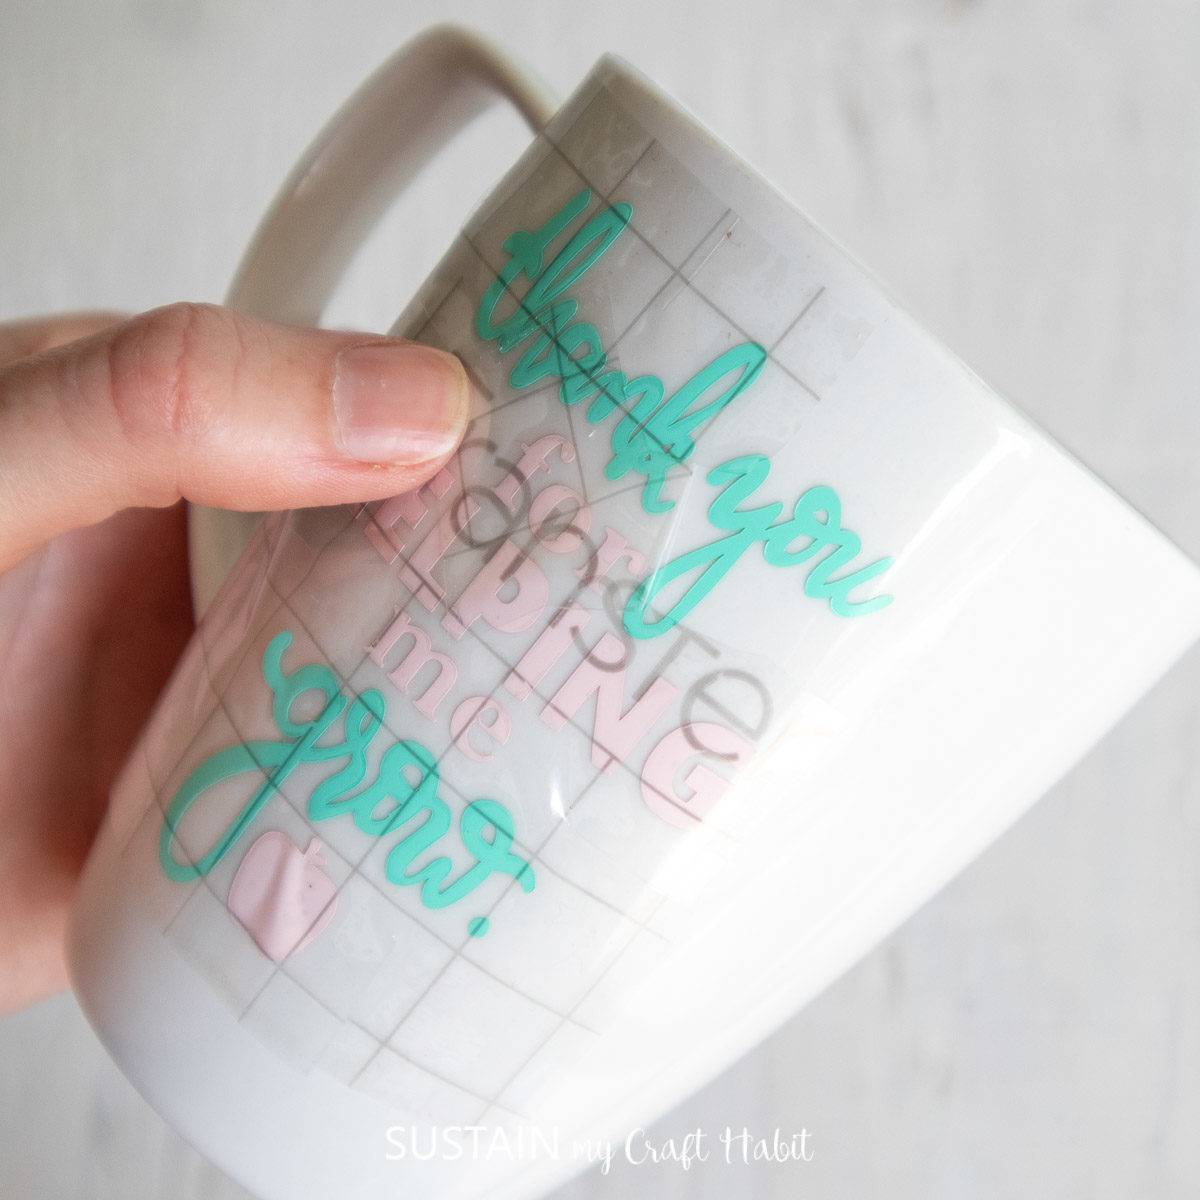 Pressing down the transfer tape and phrase onto a coffee mug.